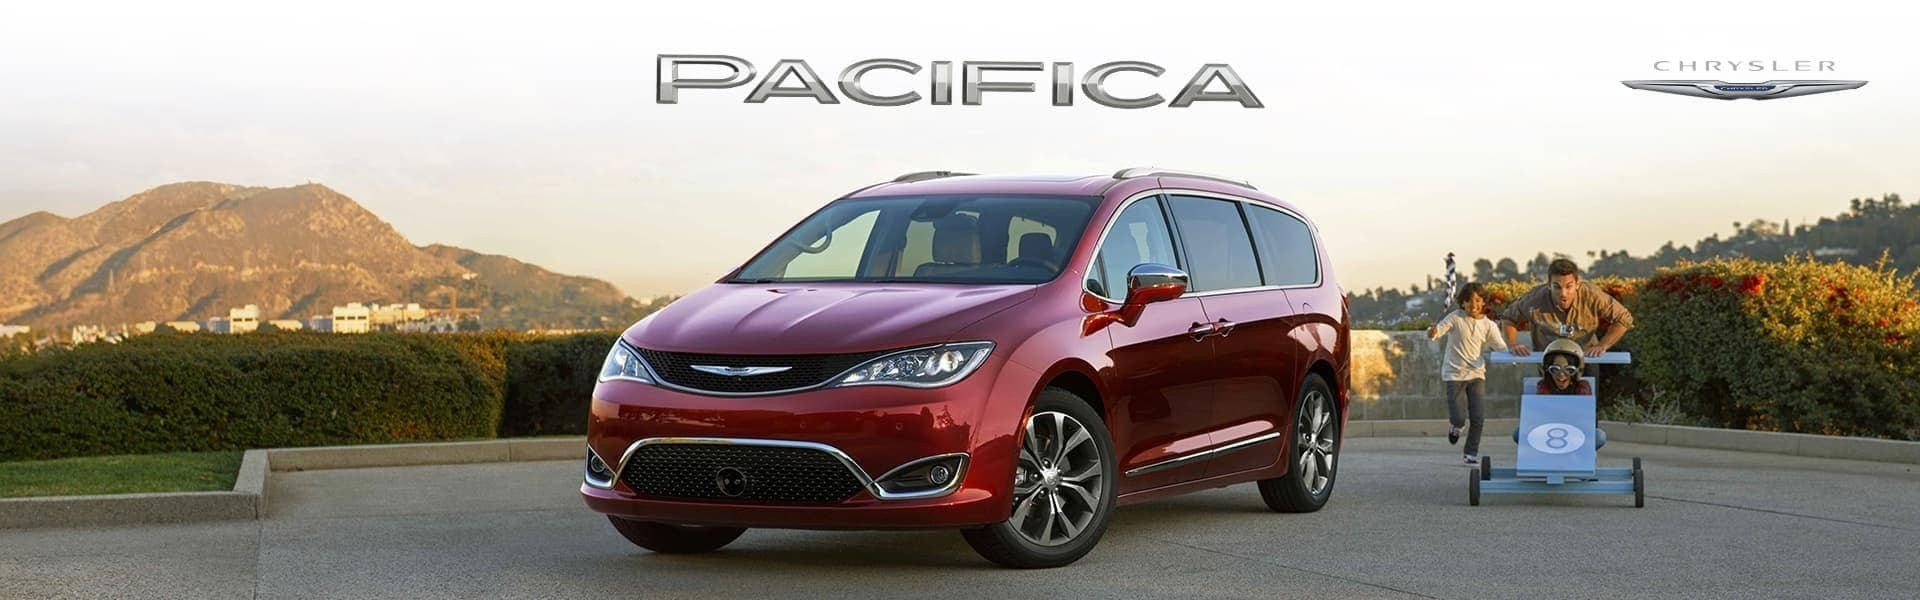 pacifica slide mobile